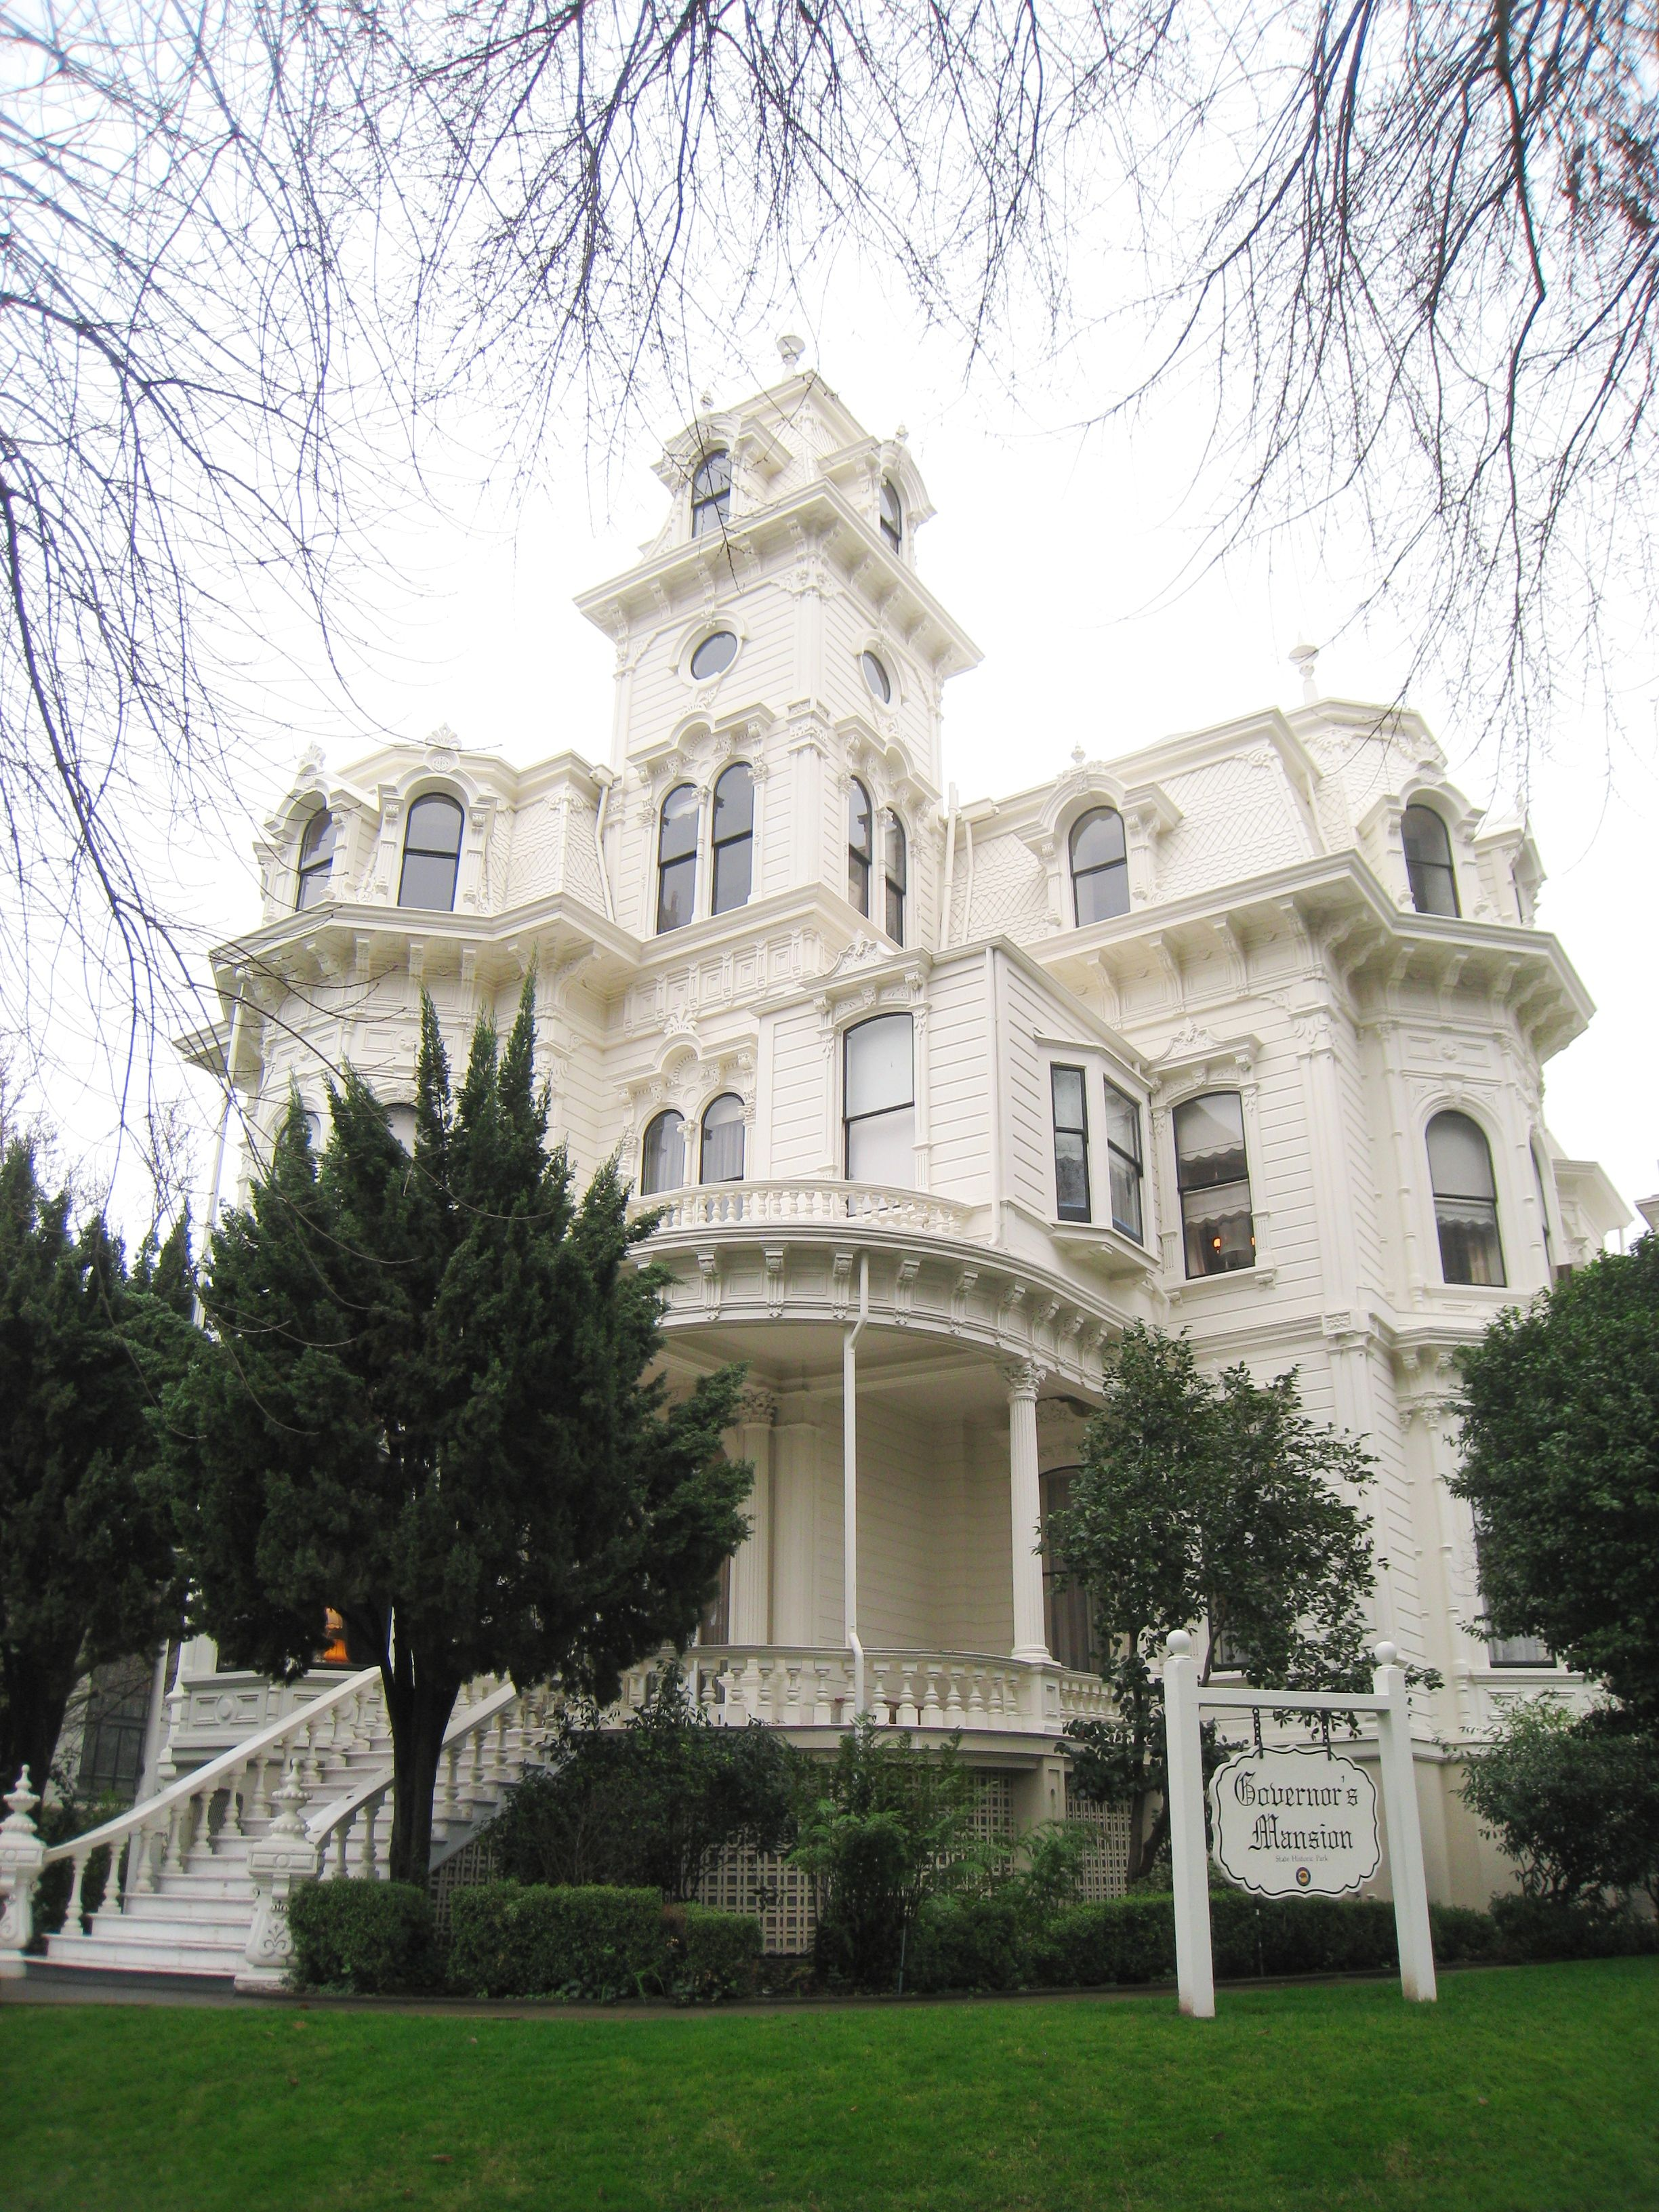 The 1877 governor 39 s mansion state historic park - Mansion victoriana ...